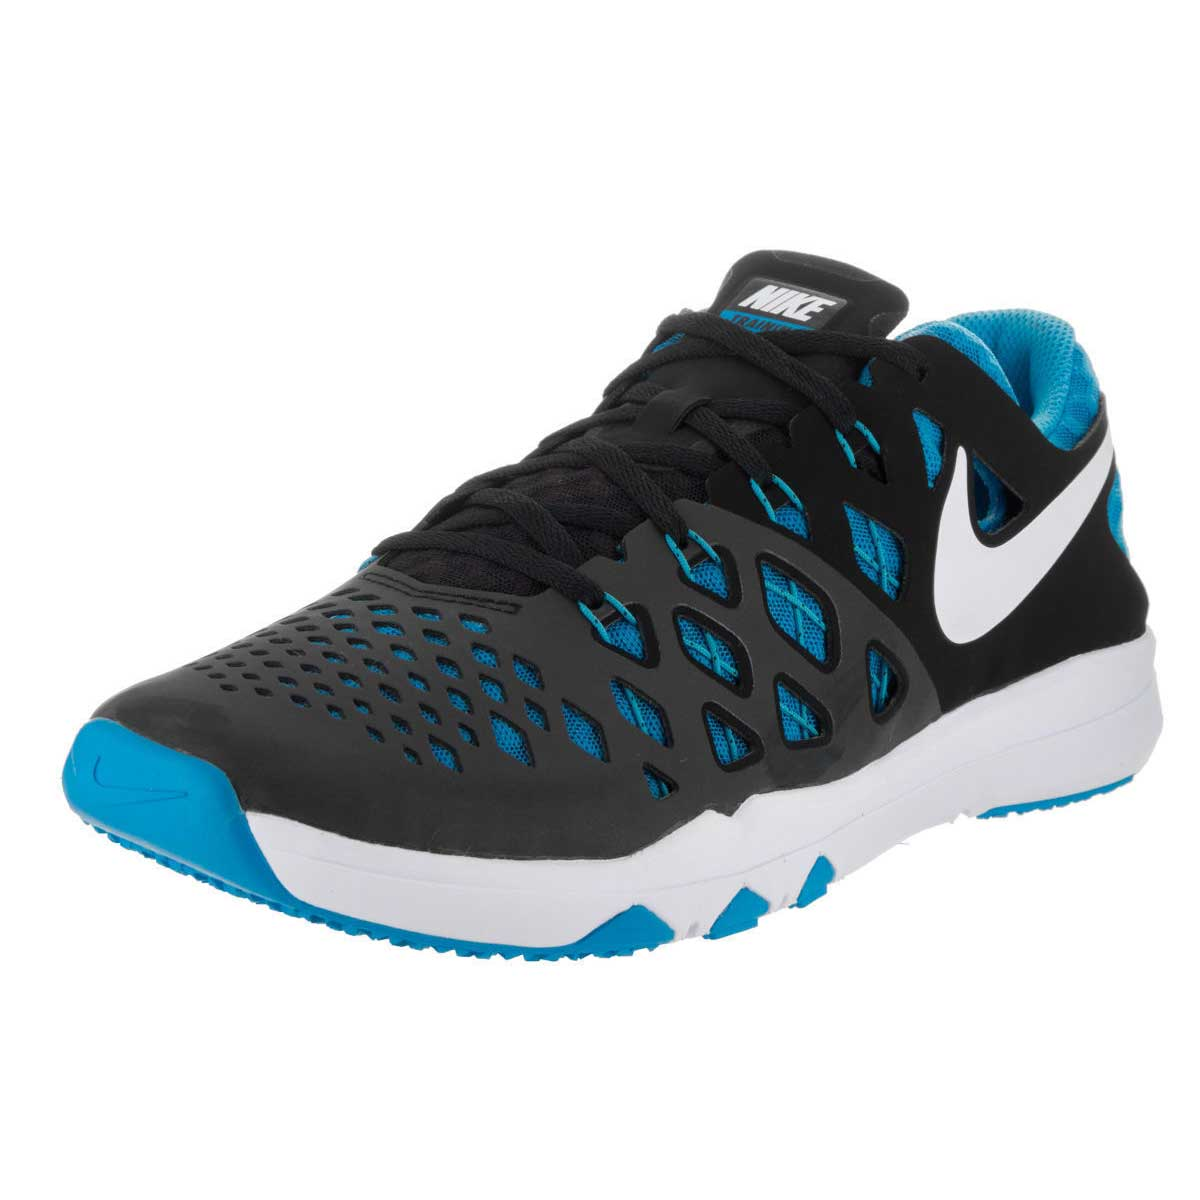 Buy Nike Speed 4 Training Shoes (Black Blue) Online at Lowest Price in India 036ae0b17